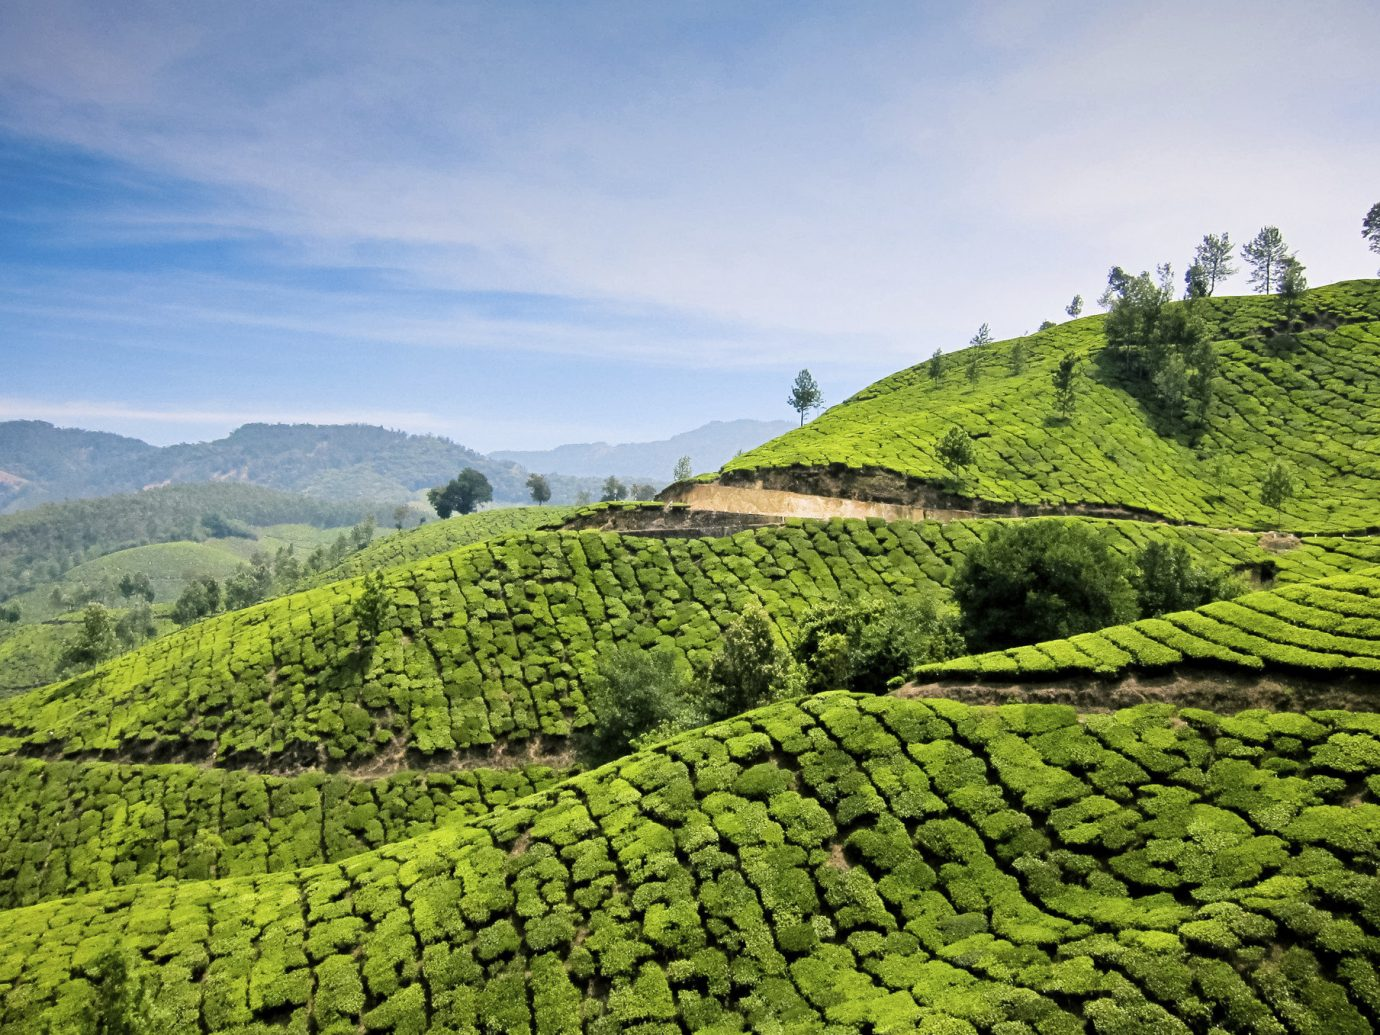 Offbeat Travel Tips outdoor sky green grass mountainous landforms Nature agriculture field tea mountain hill plantation valley rural area landscape mountain range leaf plateau Terrace flower beverage lush pasture grassy hillside day highland